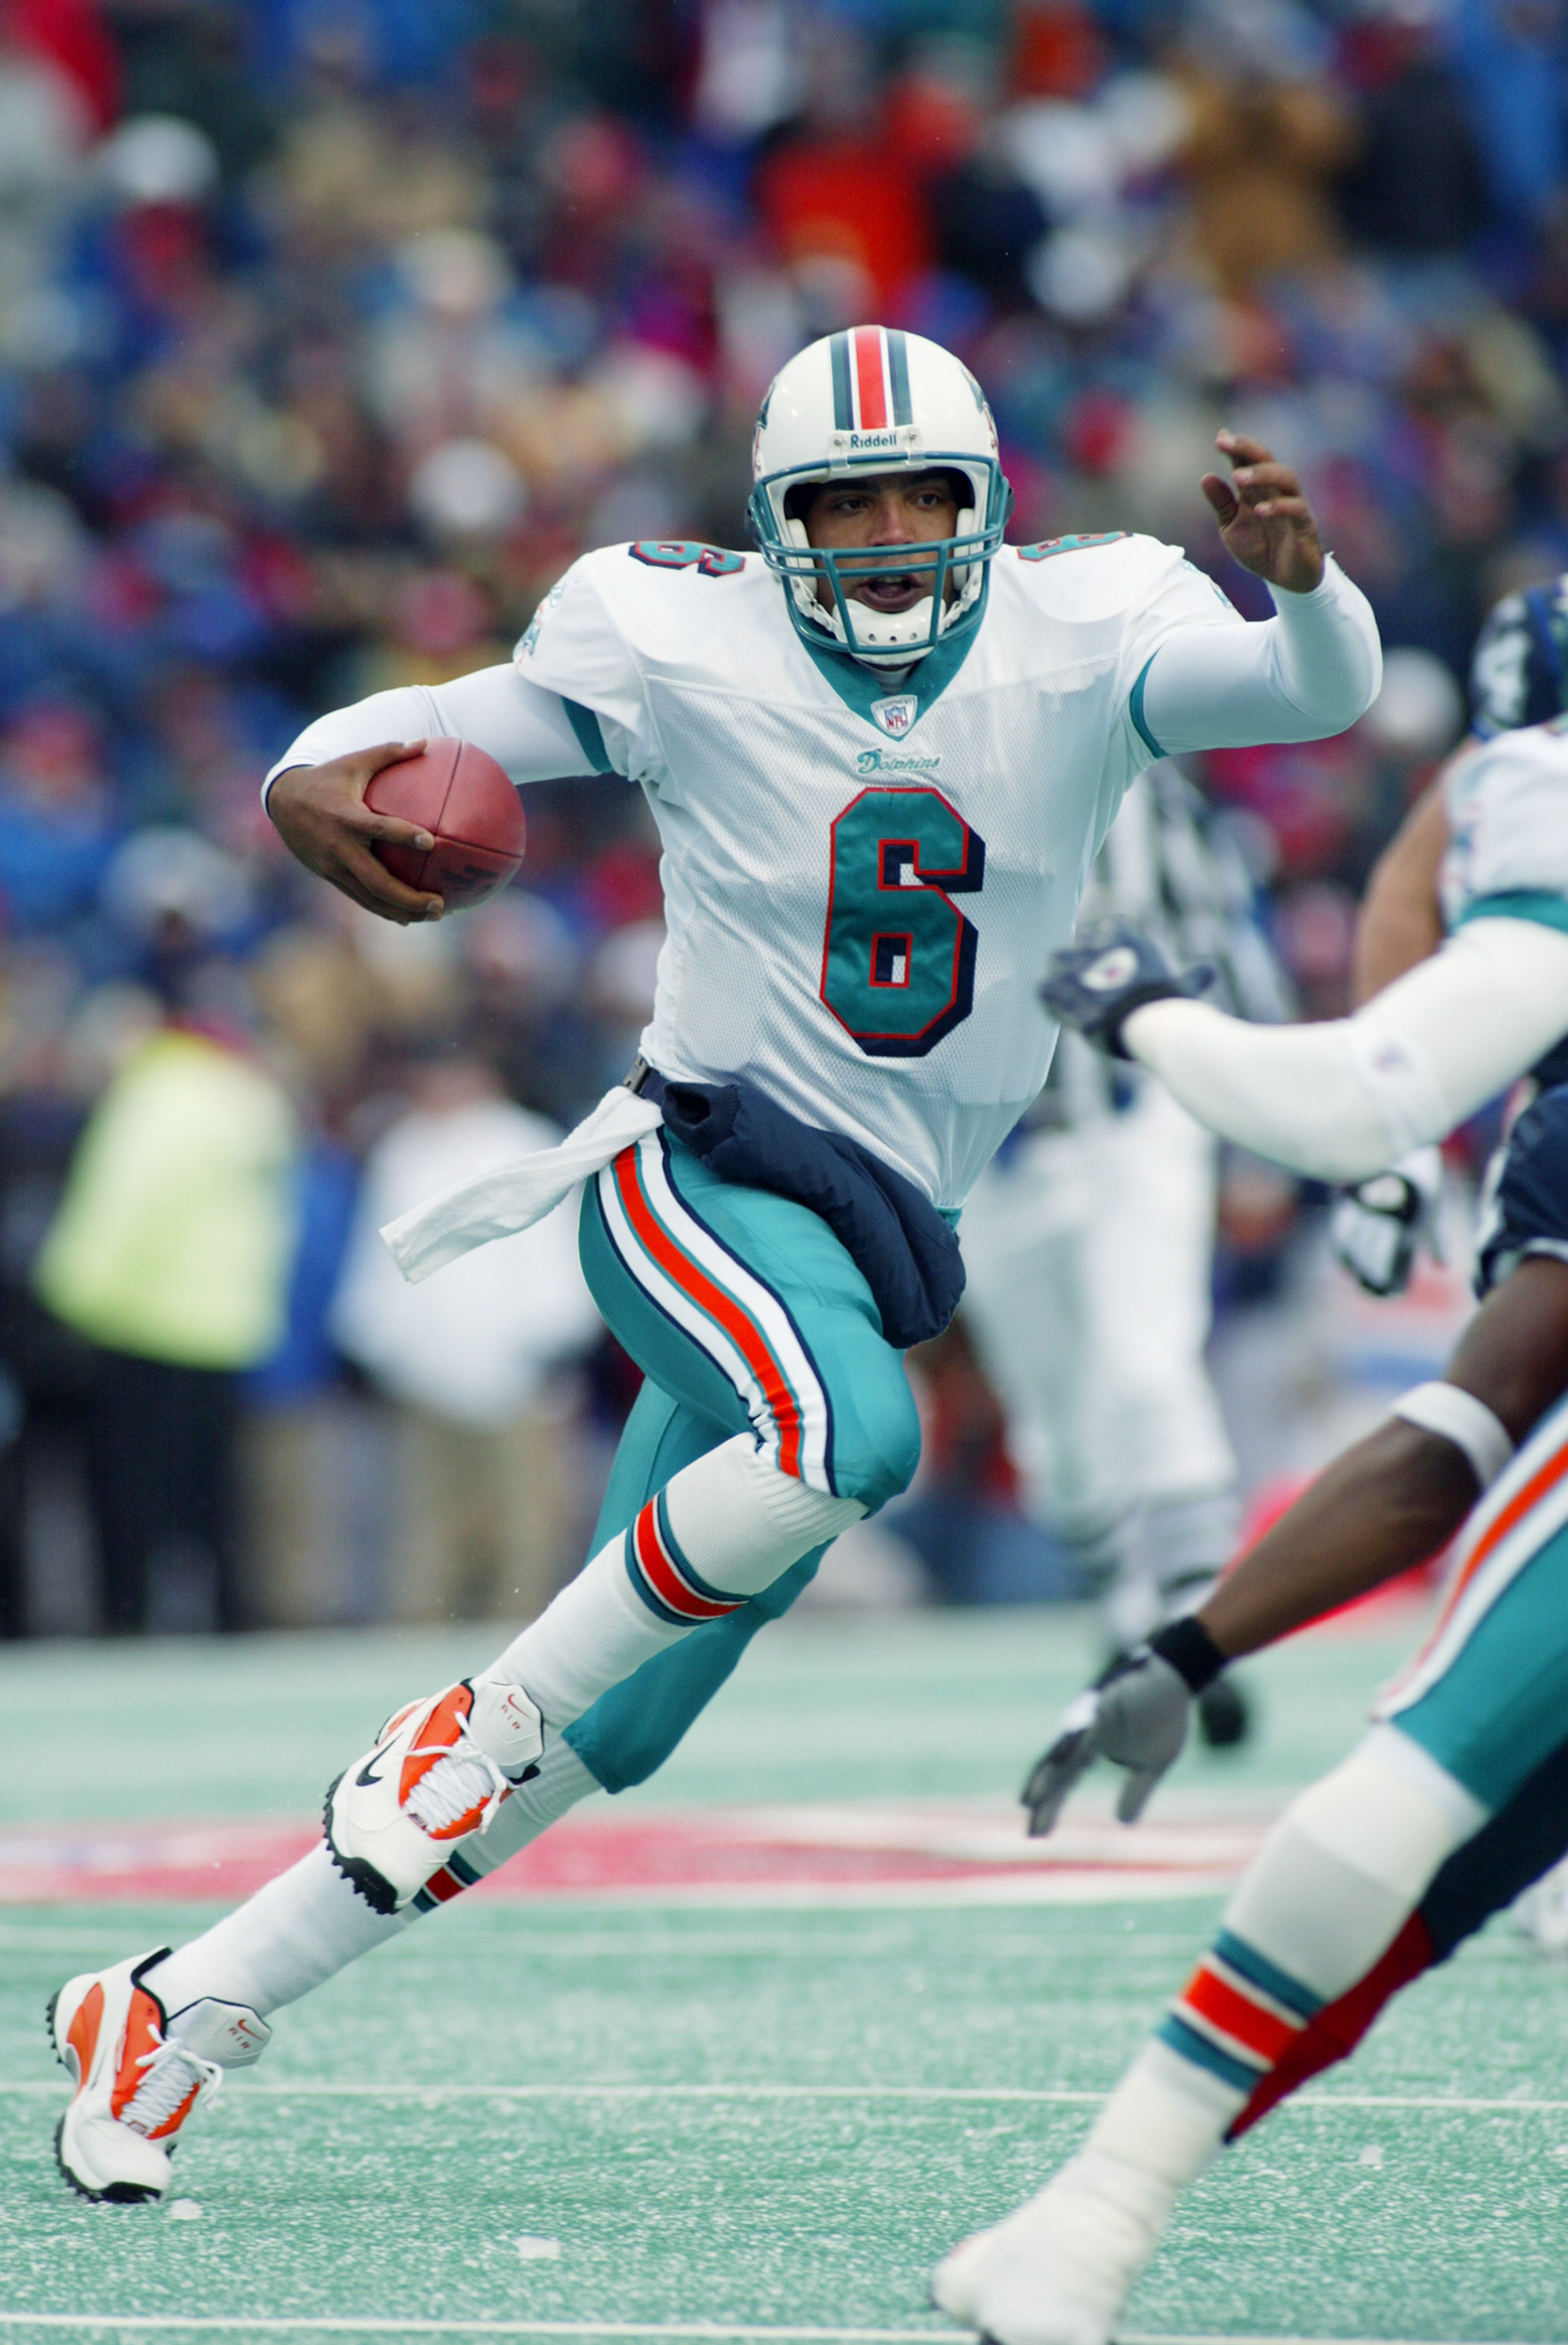 ORCHARD PARK, NY - DECEMBER 1:  Quarterback Ray Lucas #6 the Miami Dolphins scrambles during the game against the Buffalo Bills on December 1, 2002 at Ralph Wilson Stadium in Orchard Park, New York.Buffalo defeated the dolphins 38-21. (Photo by Rick Stewa